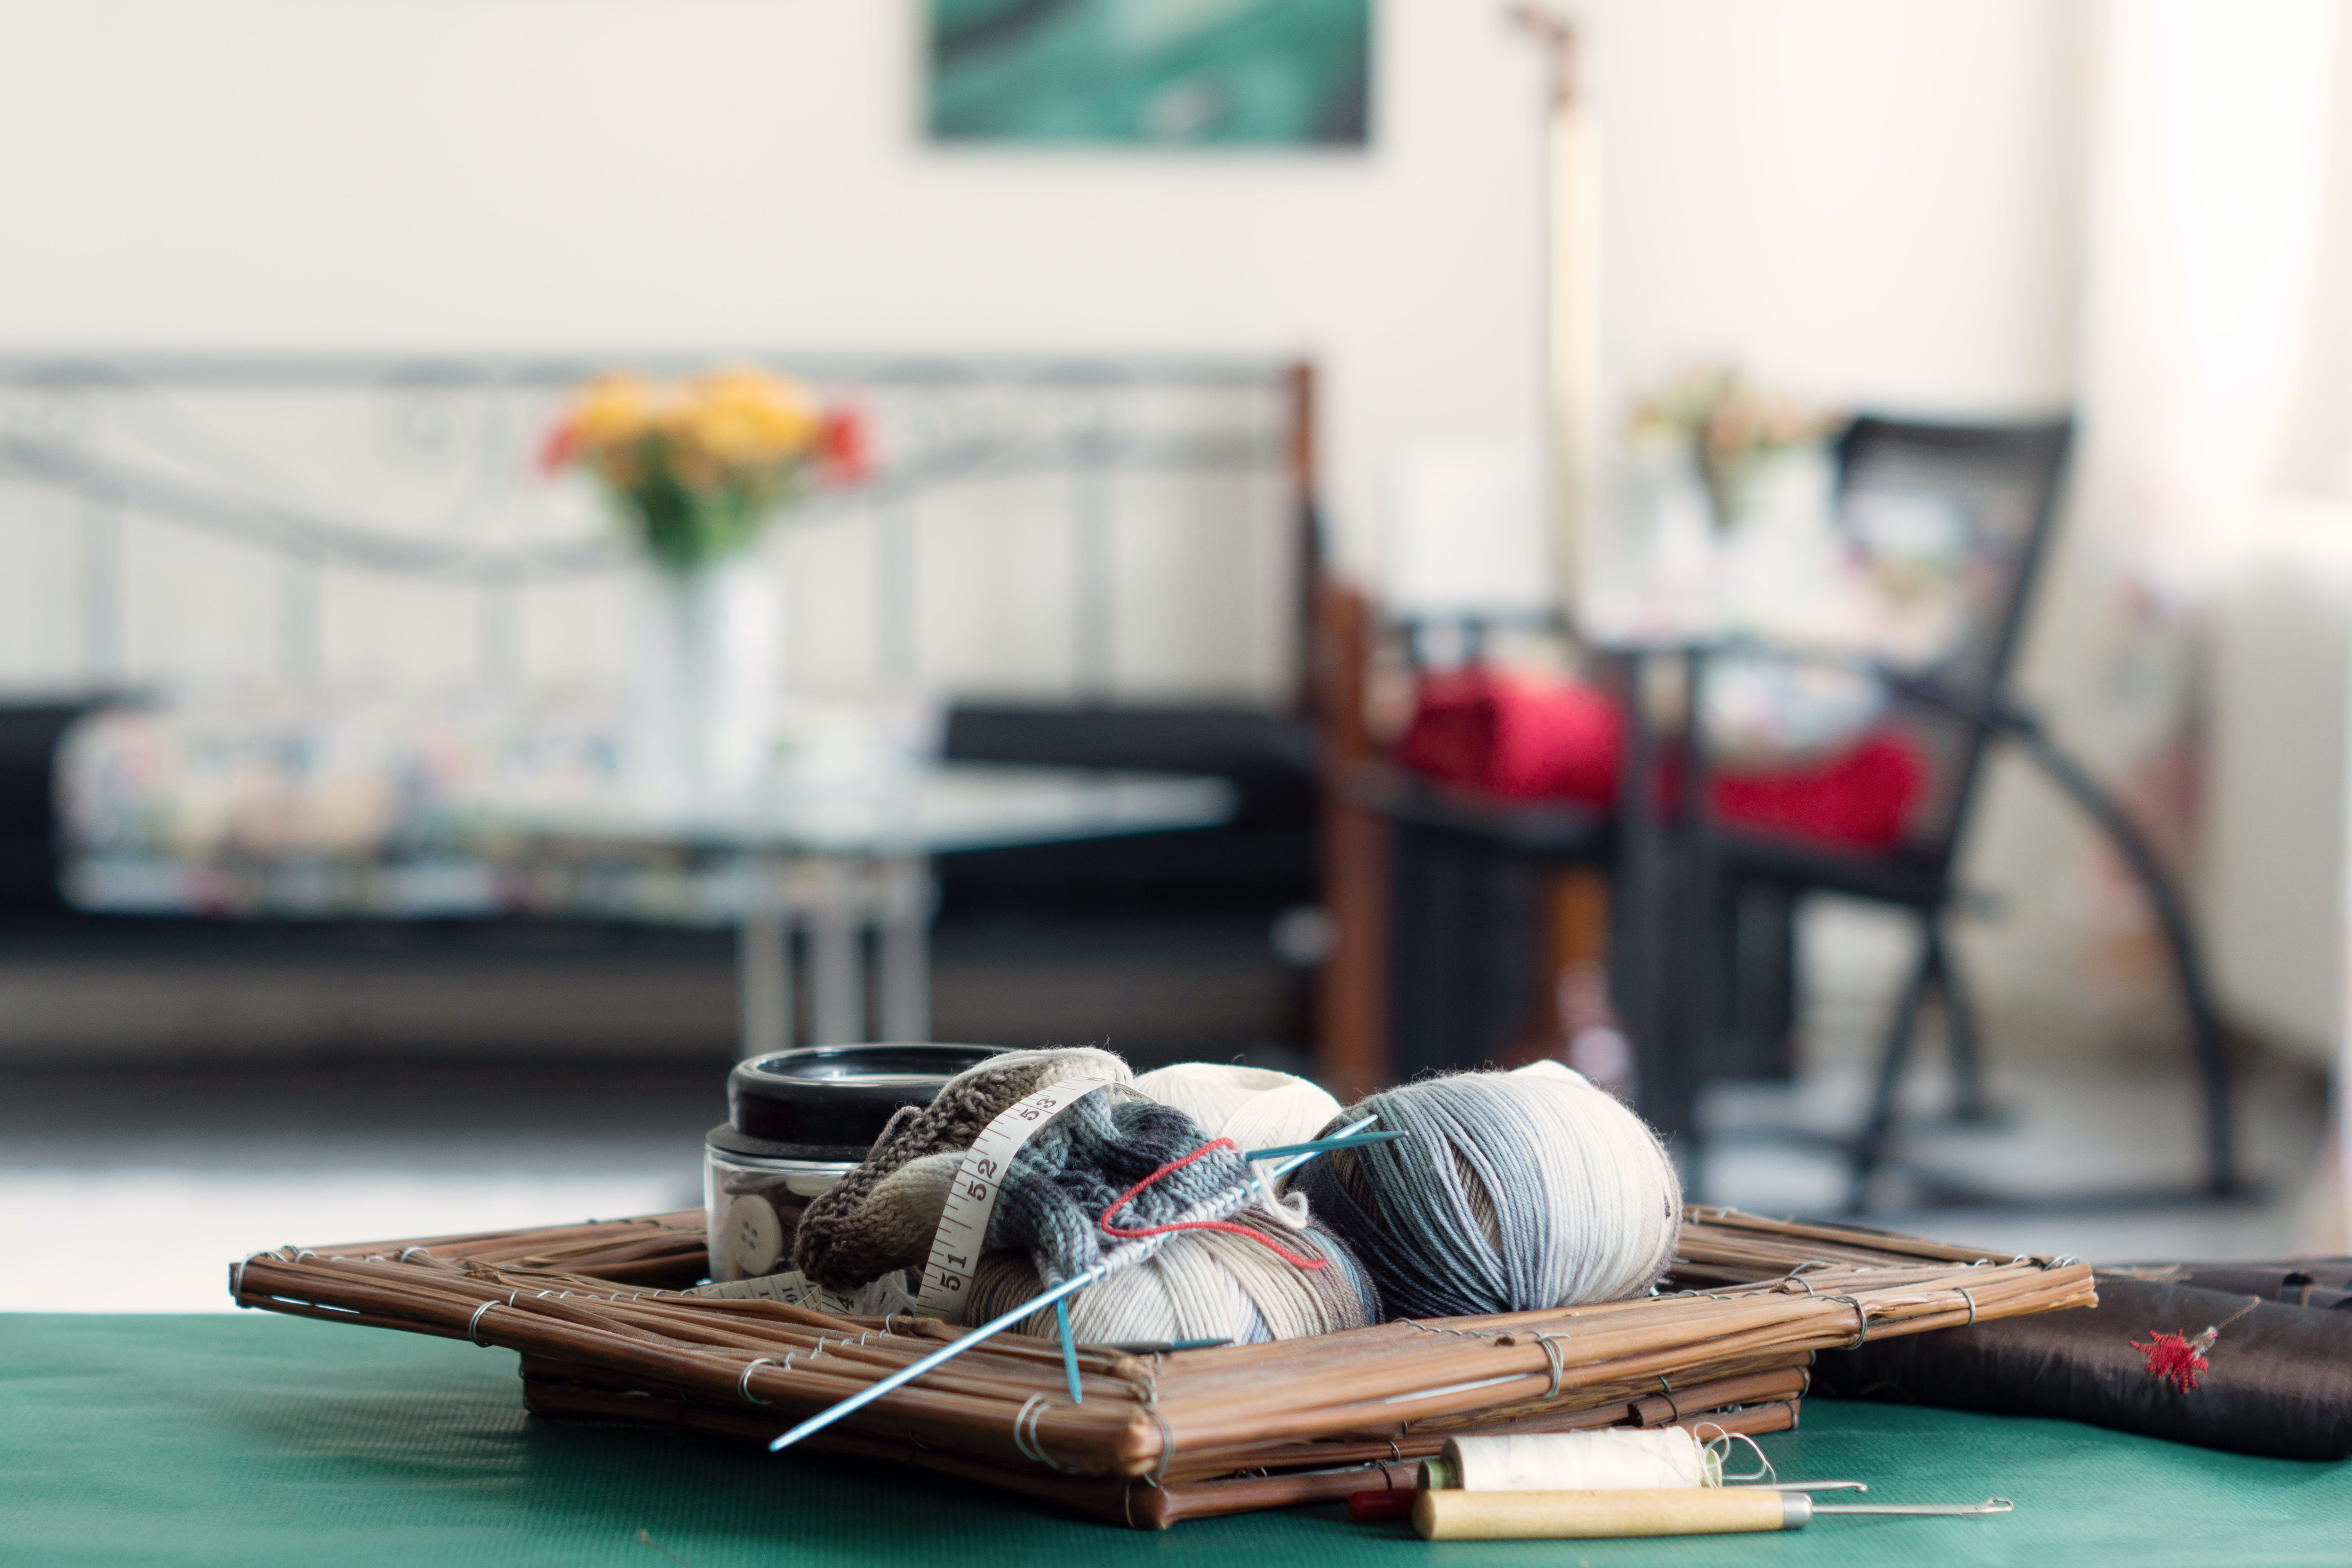 Selective-focus Photography of Yarn on Table